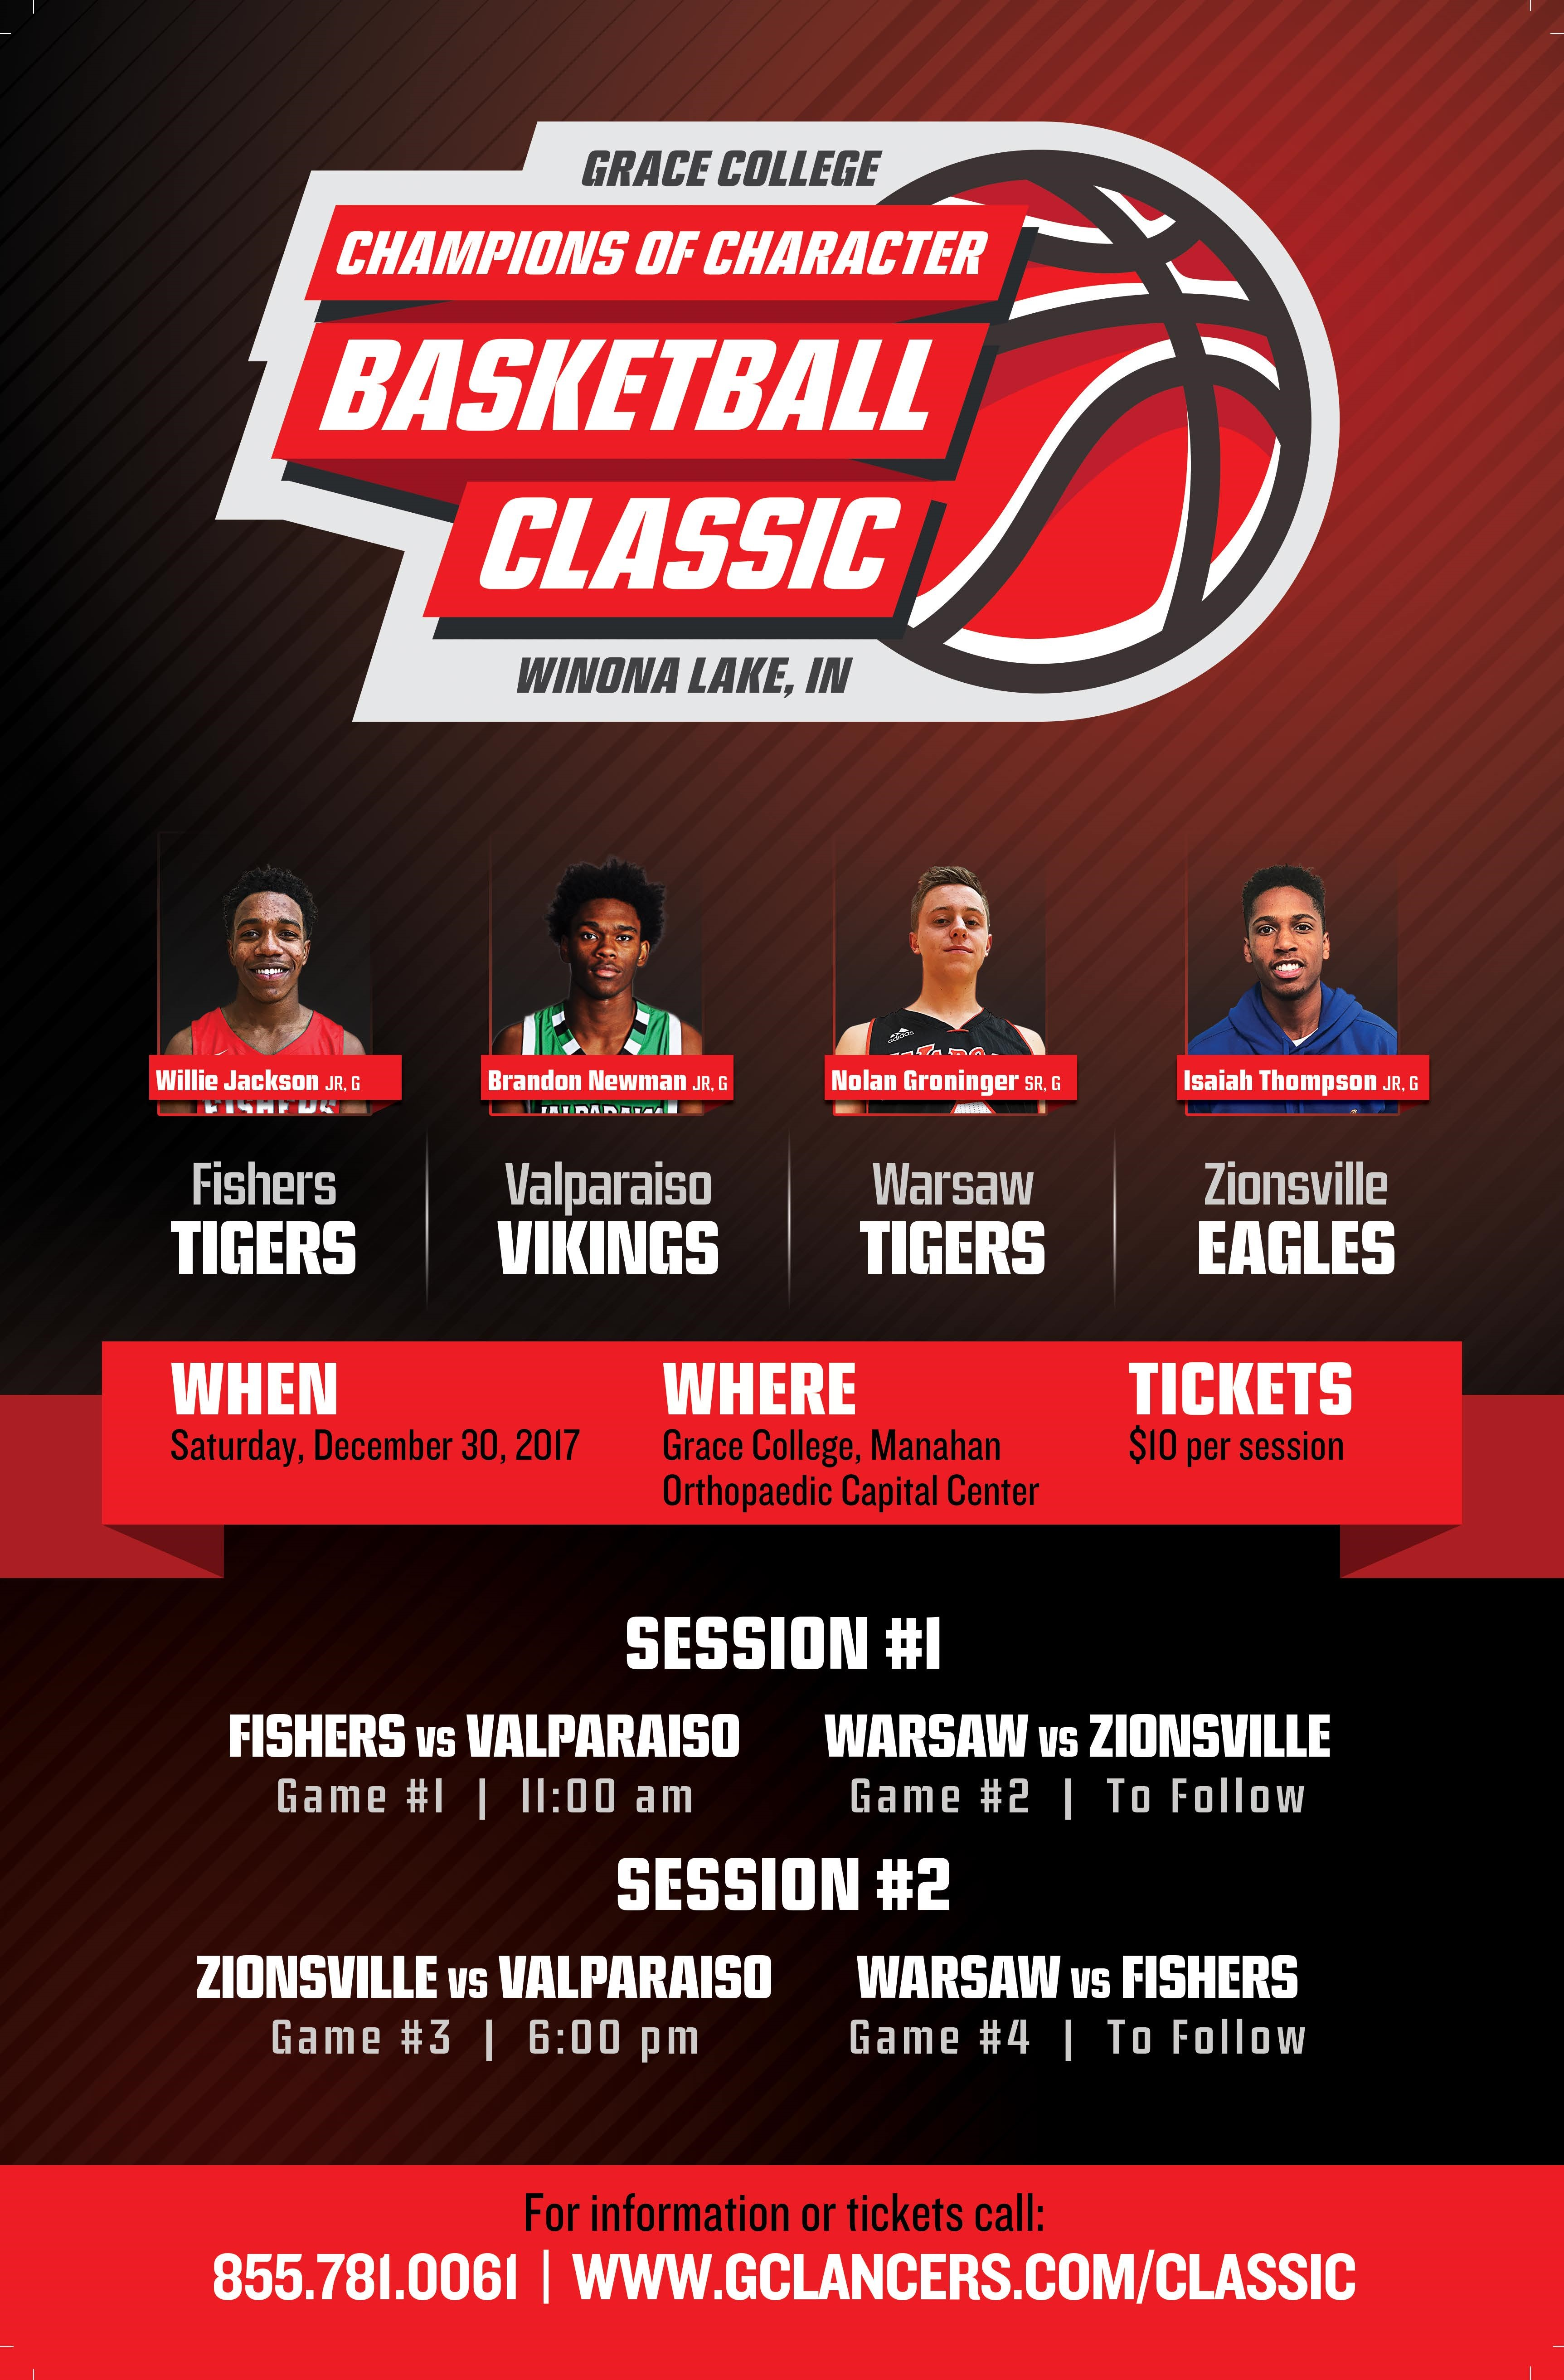 Grace College Champions of Character Classic Ticket Sales